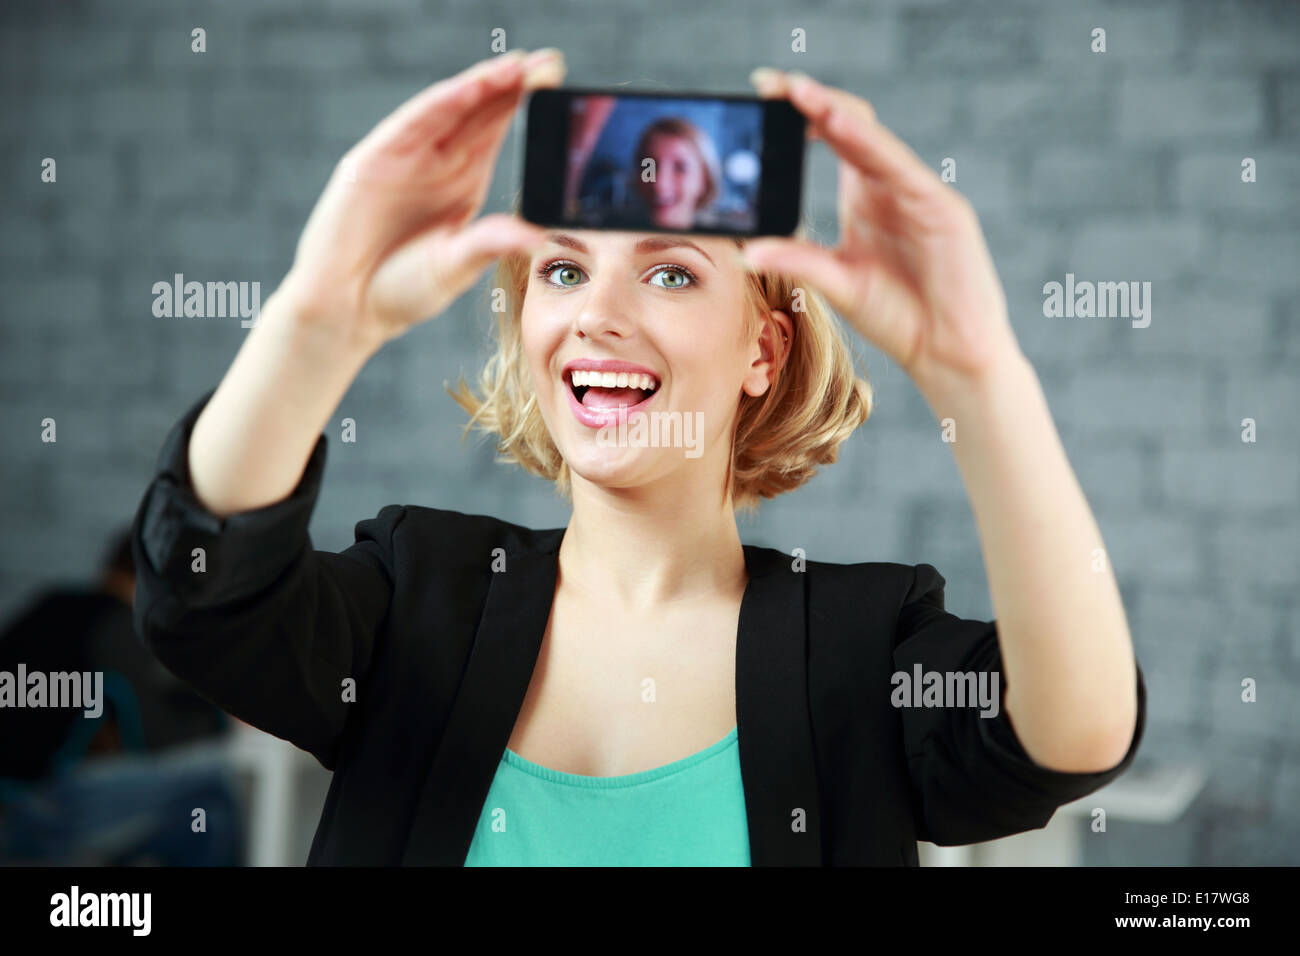 Young laughing woman making a self photo by her smartphone in office - Stock Image